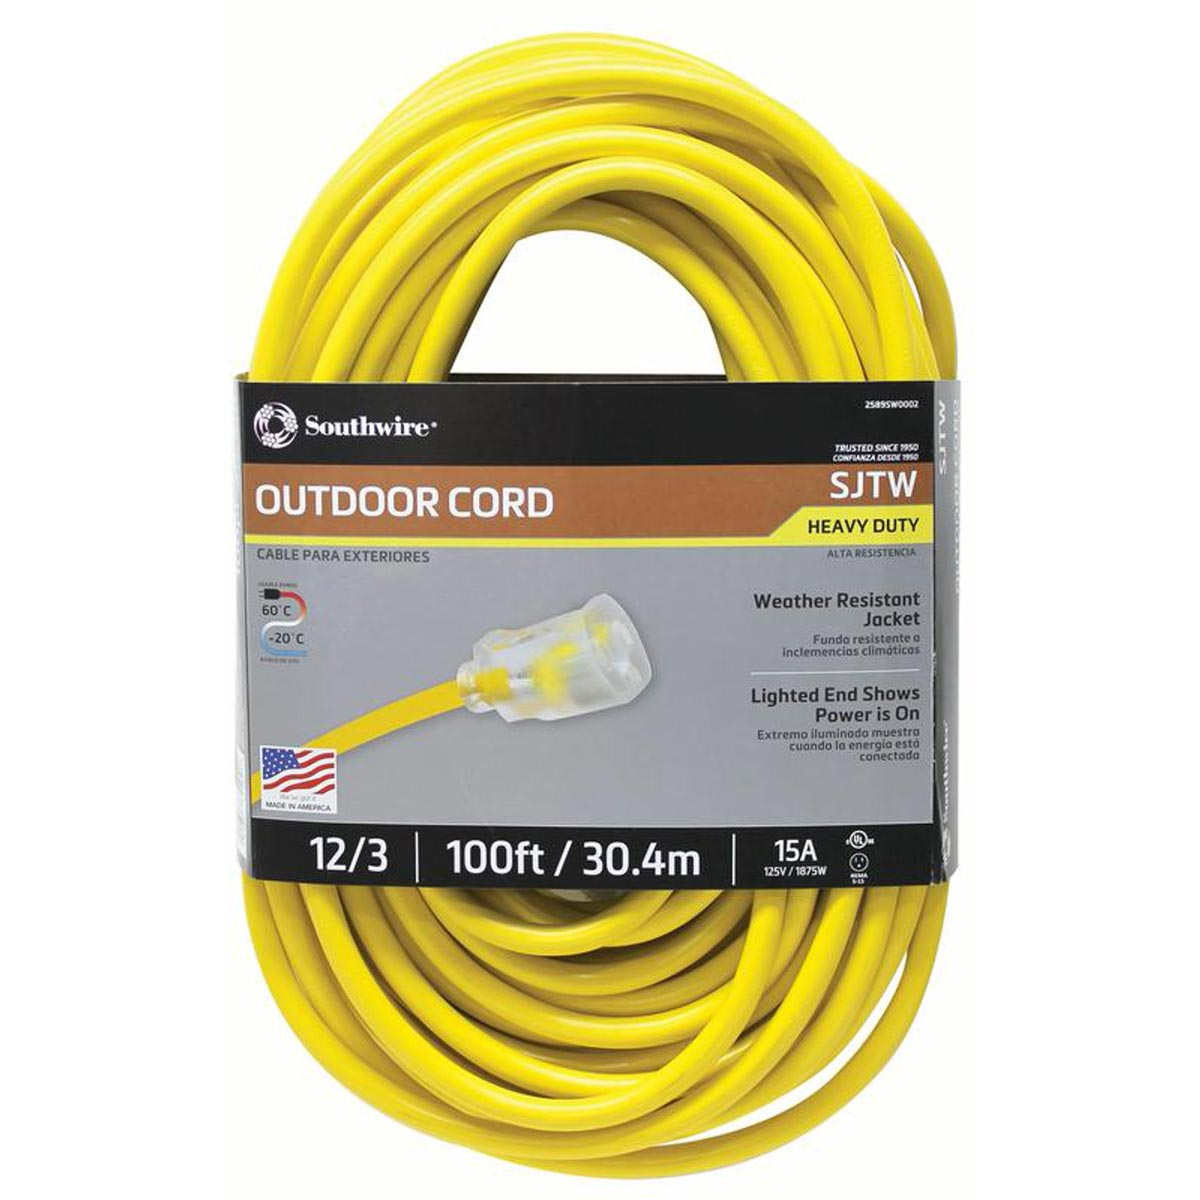 Southwire 100 ft. 12/3 SJTW 15 Amp Heavy-Duty Outdoor Extension Cord with Lighted Power End